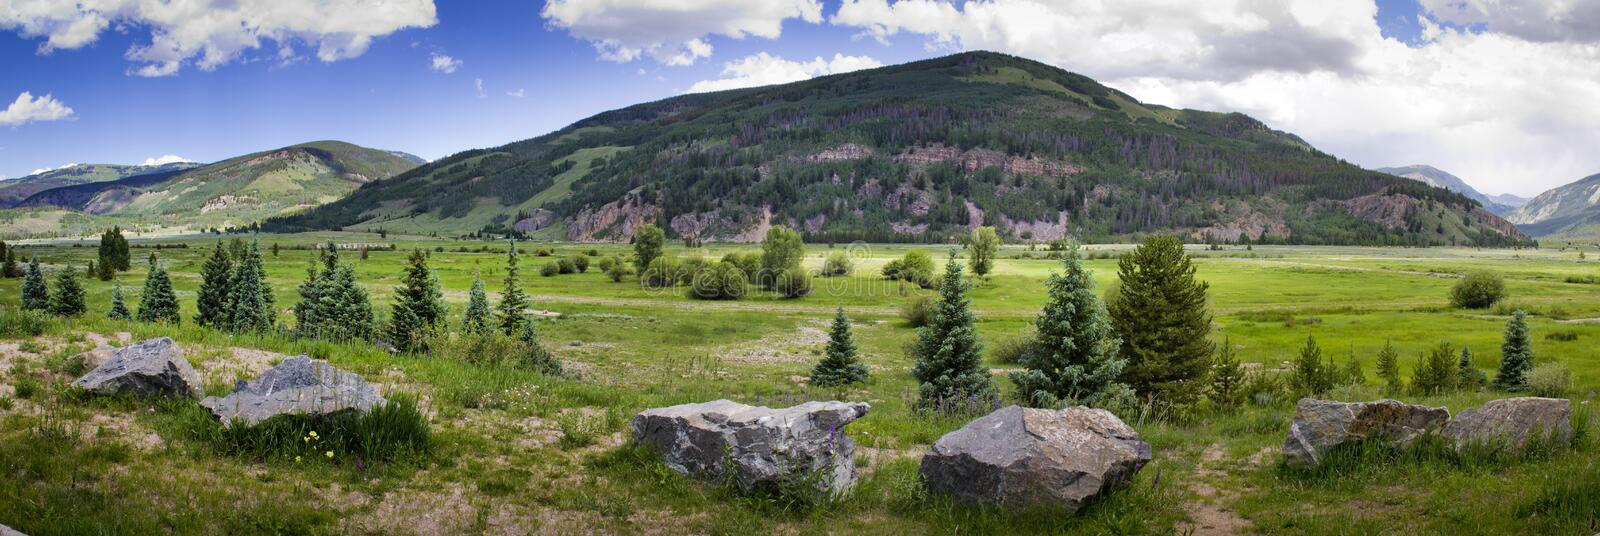 Leadville Colorado Camp Hale Training Location of 10th Mountain Division. This valley just outside Leadville, Colorado was the training location for the 10th royalty free stock image